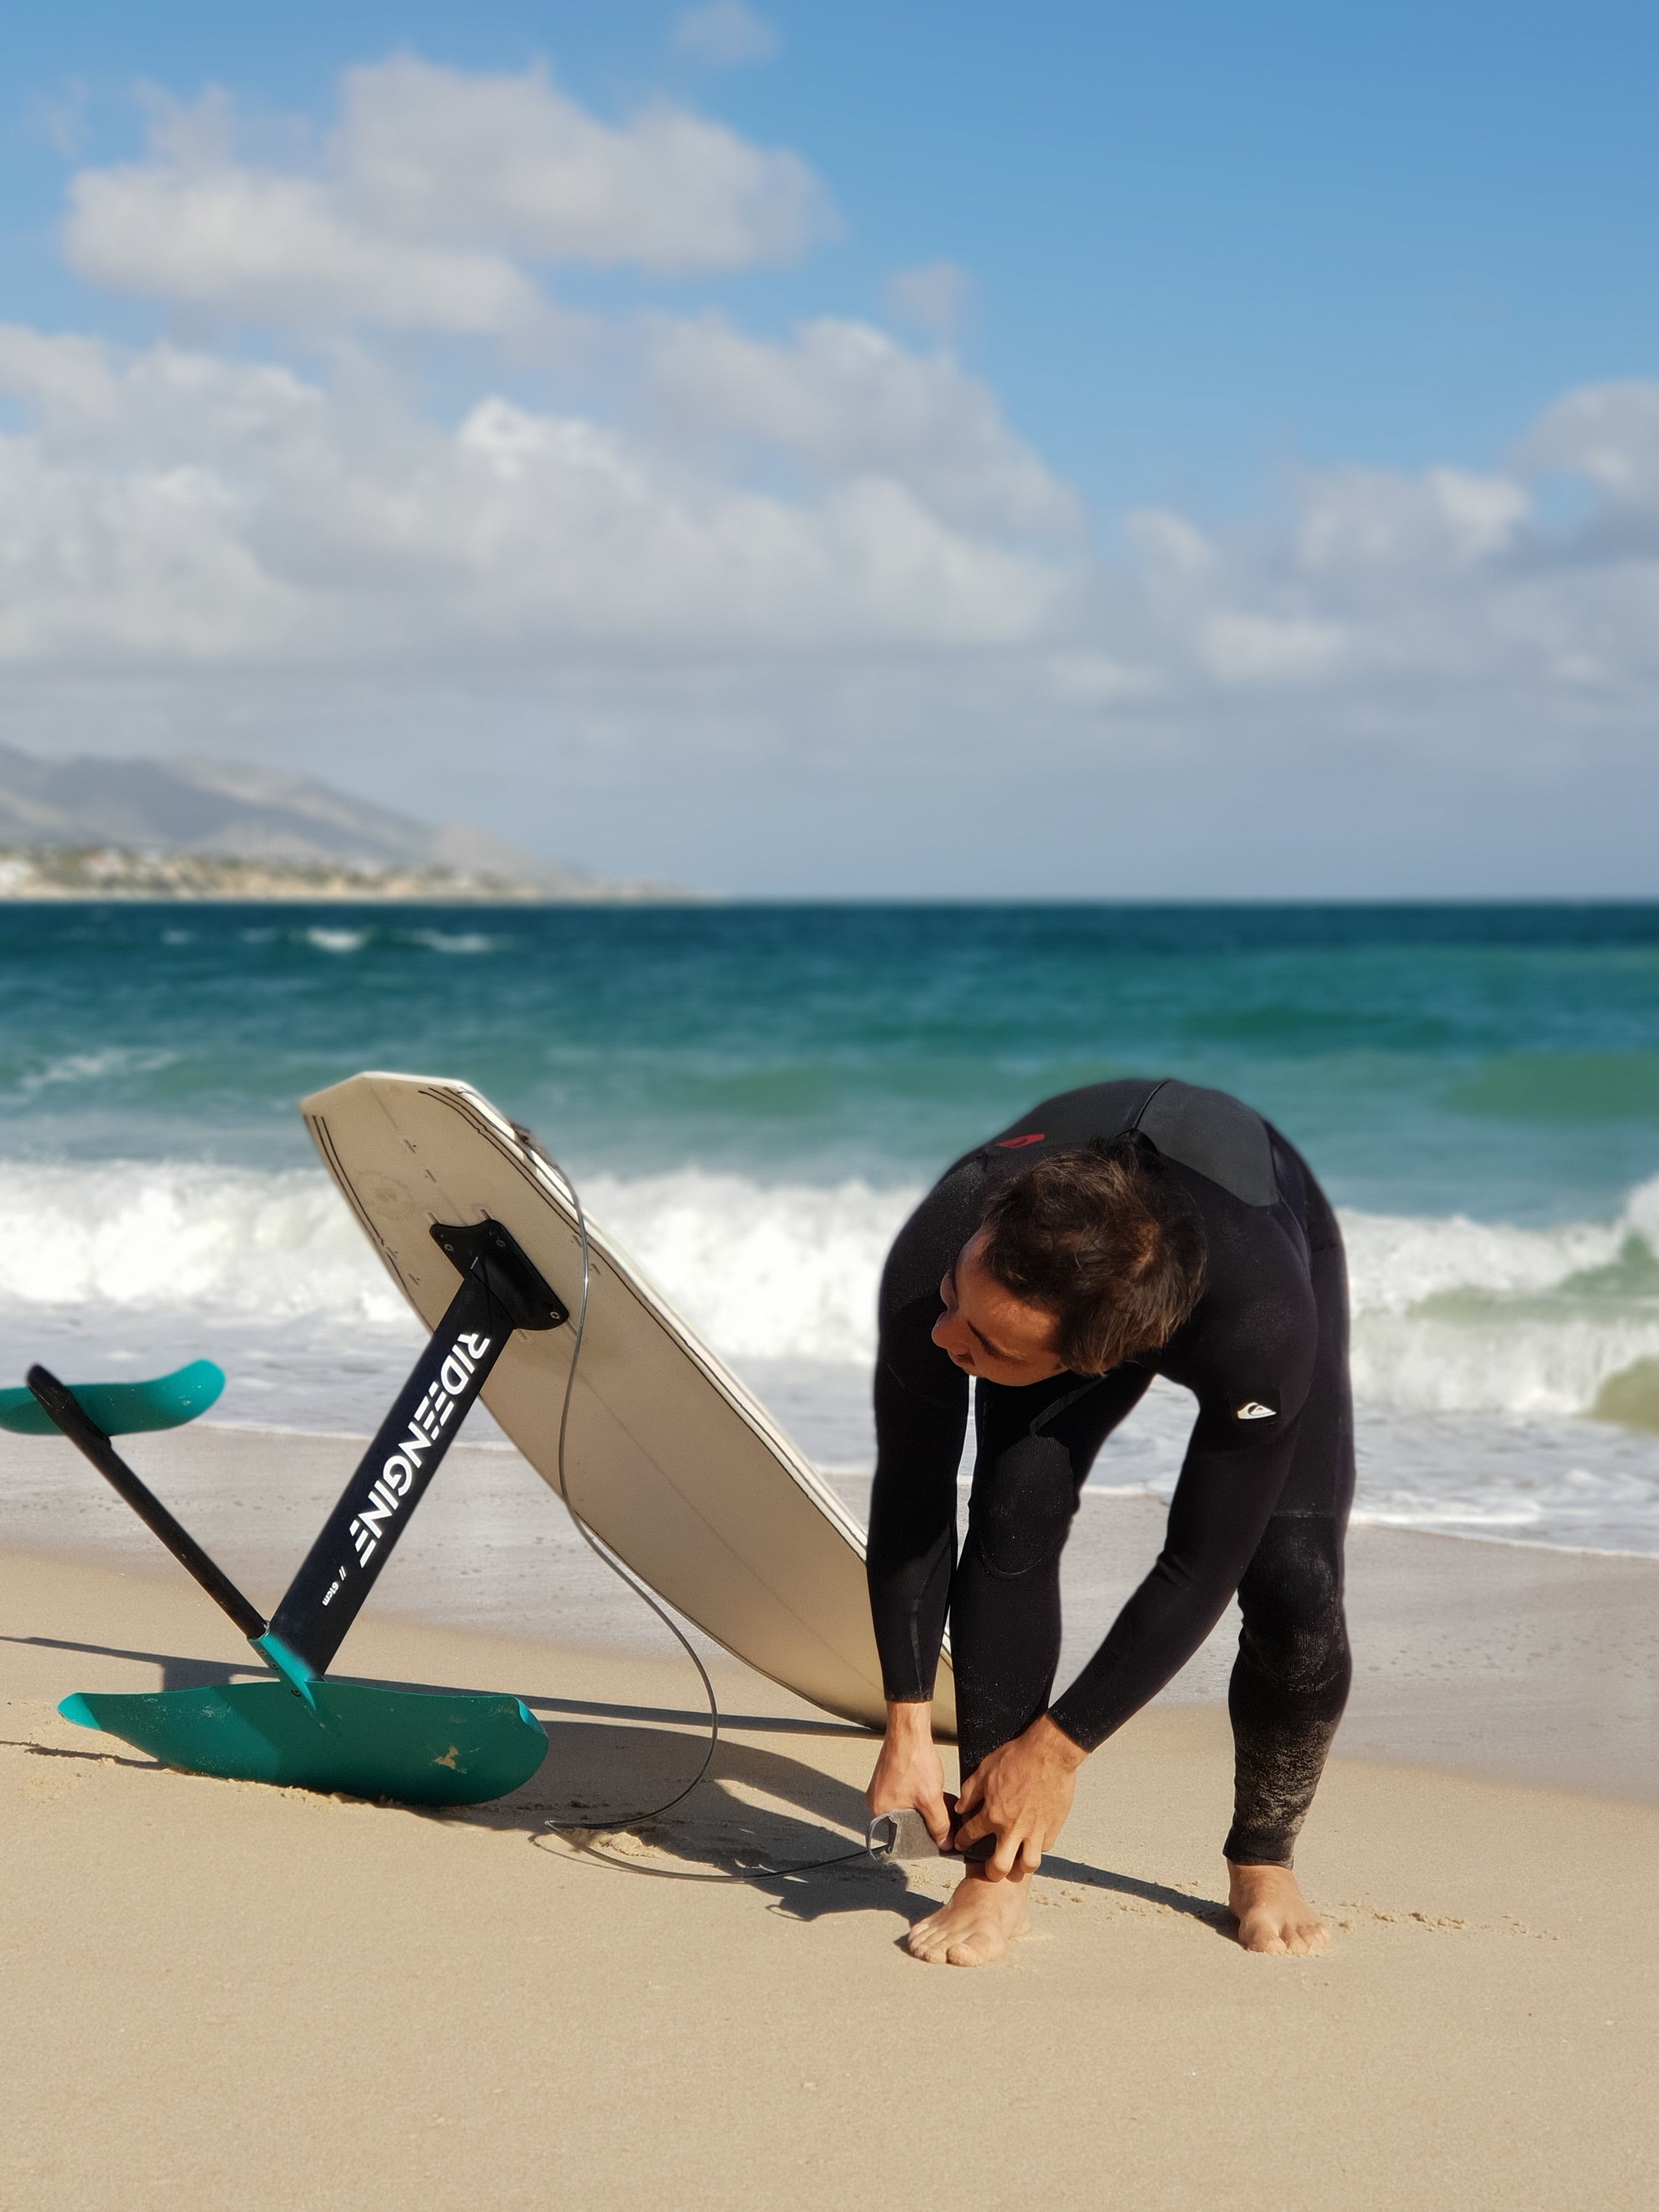 Surfing and foiling in Baja California Sur, in La Ventana.